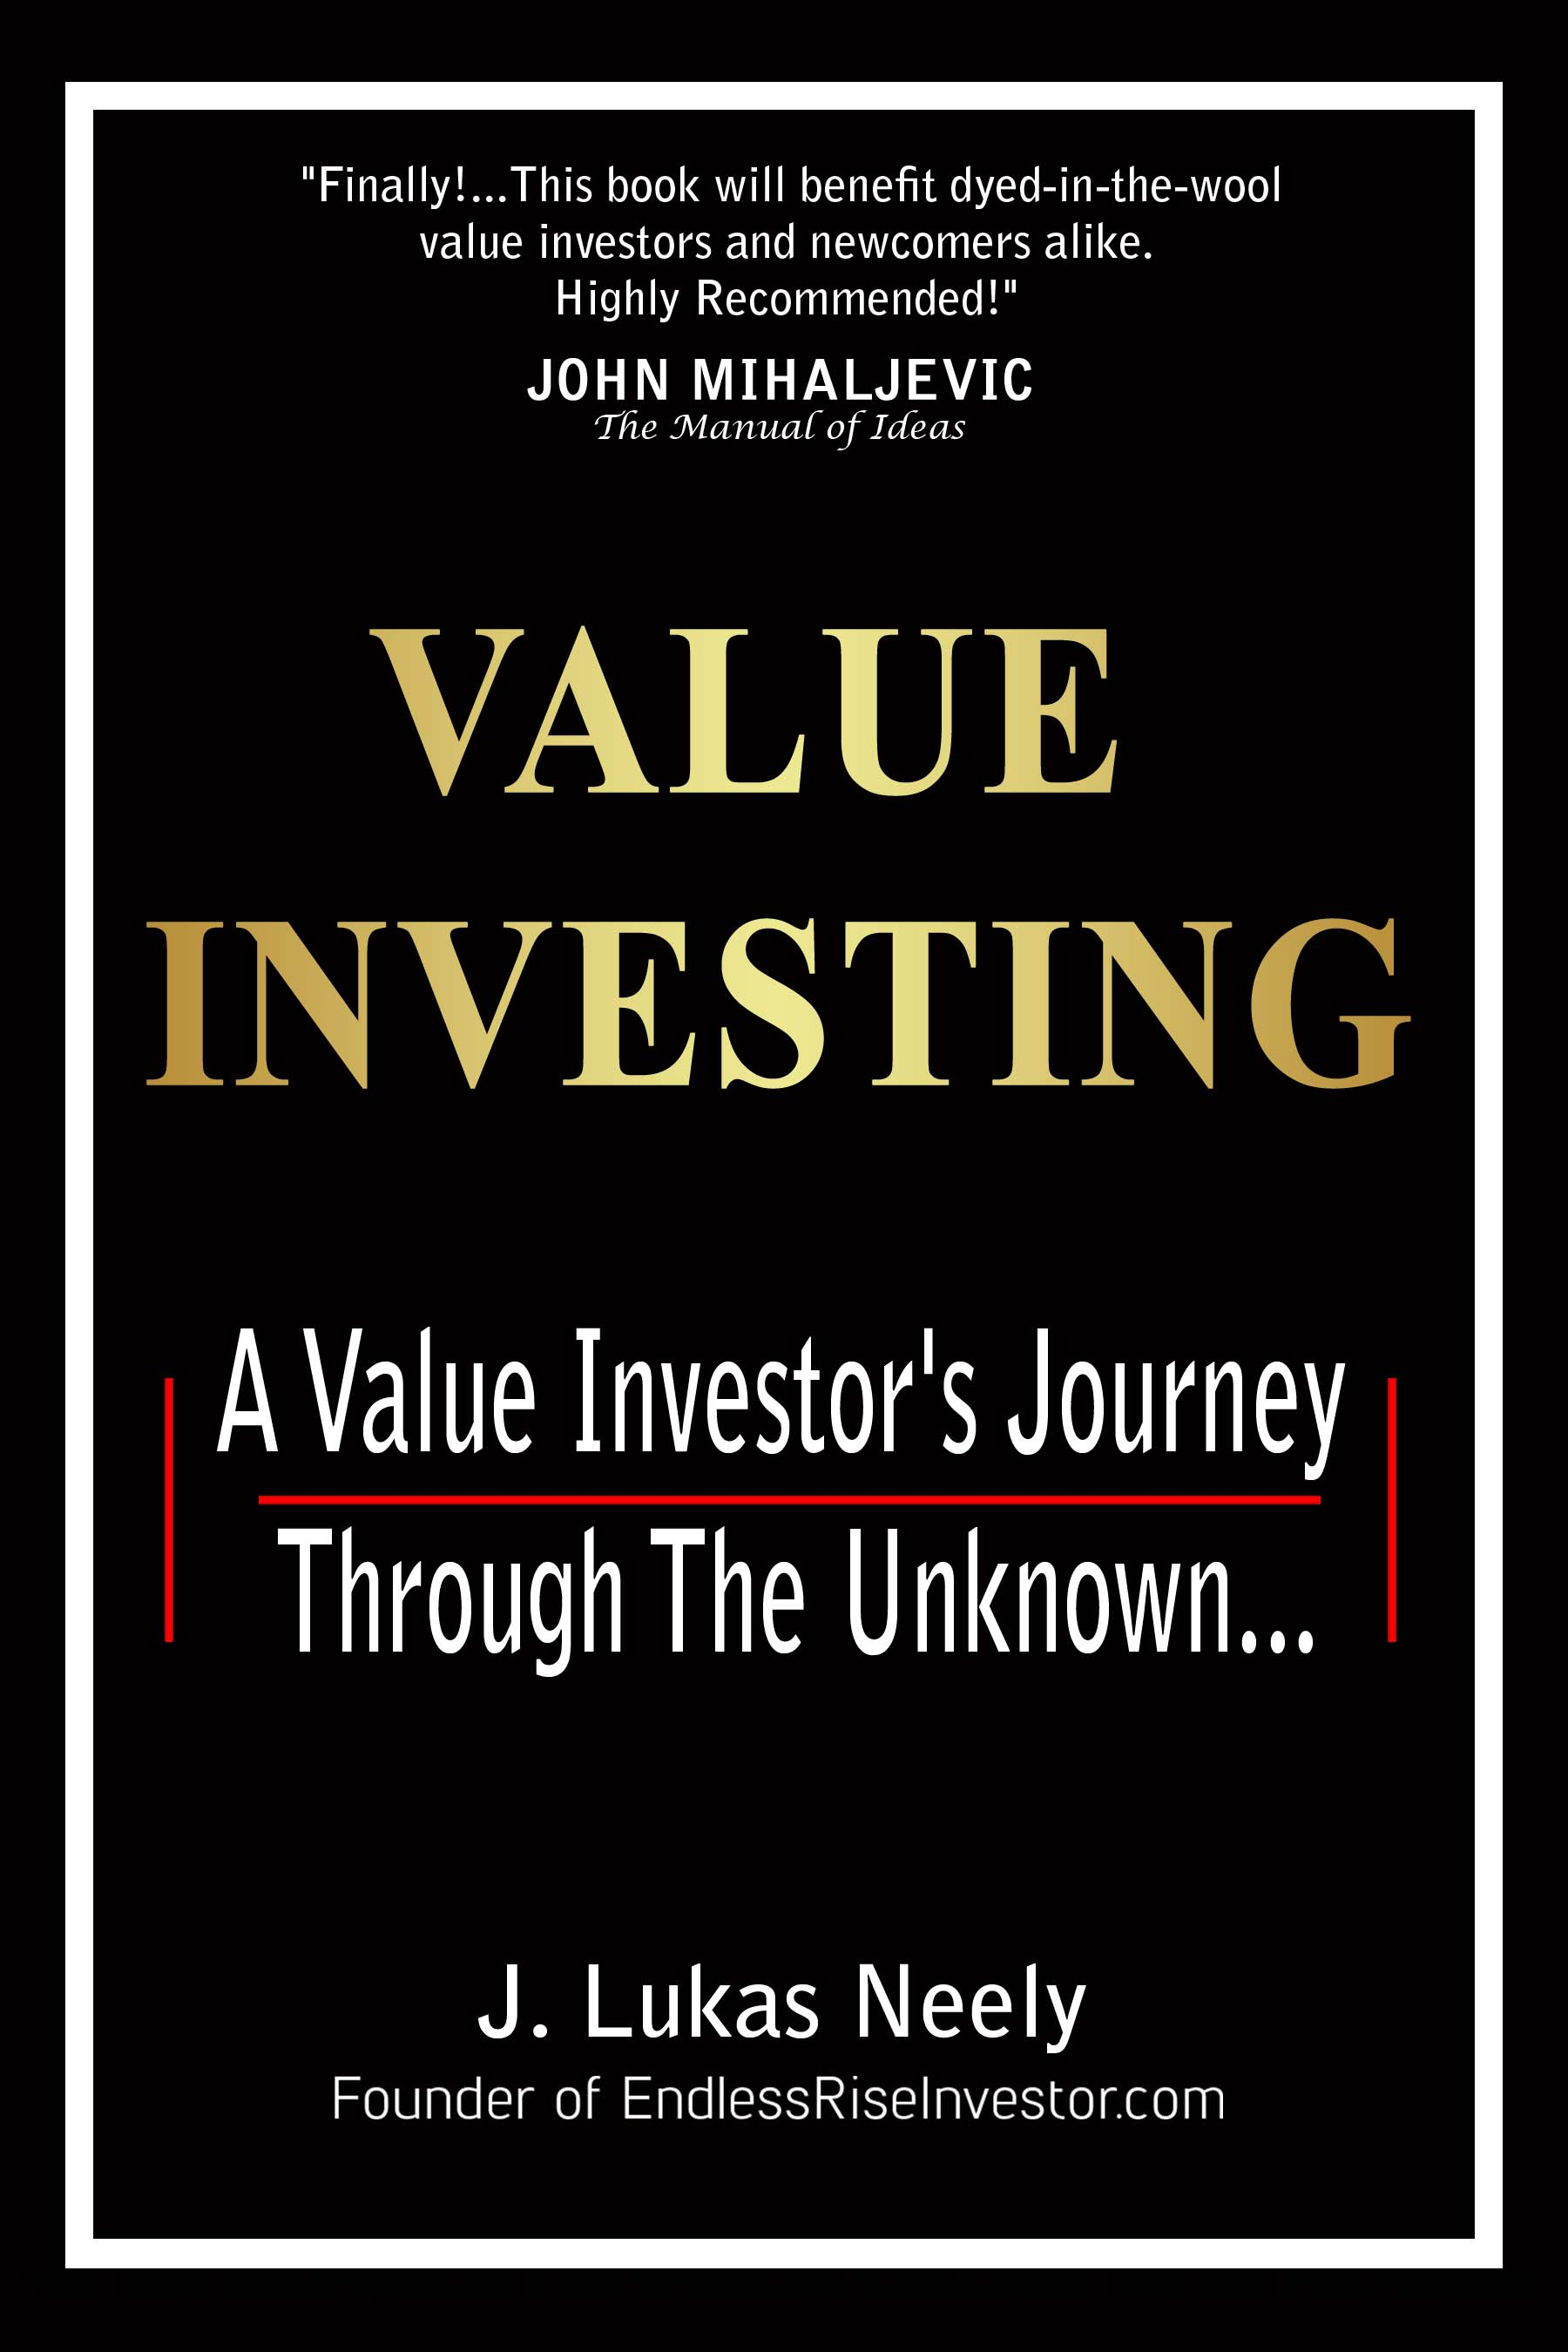 A Value Investor's Journey Through The Unknown...